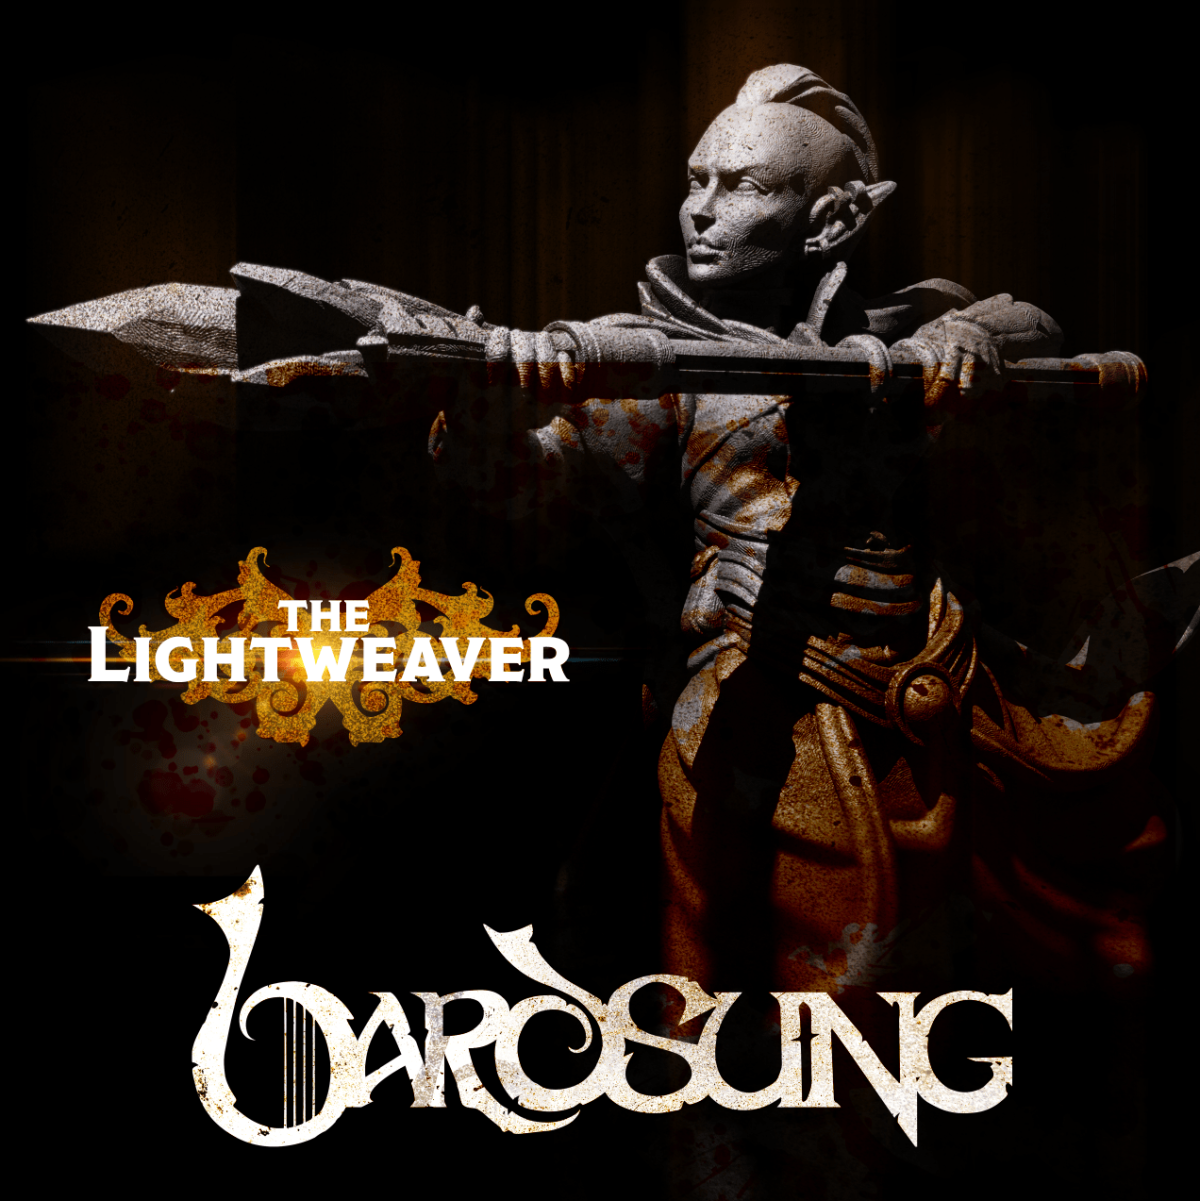 Bardsung-Lightweaver-Square